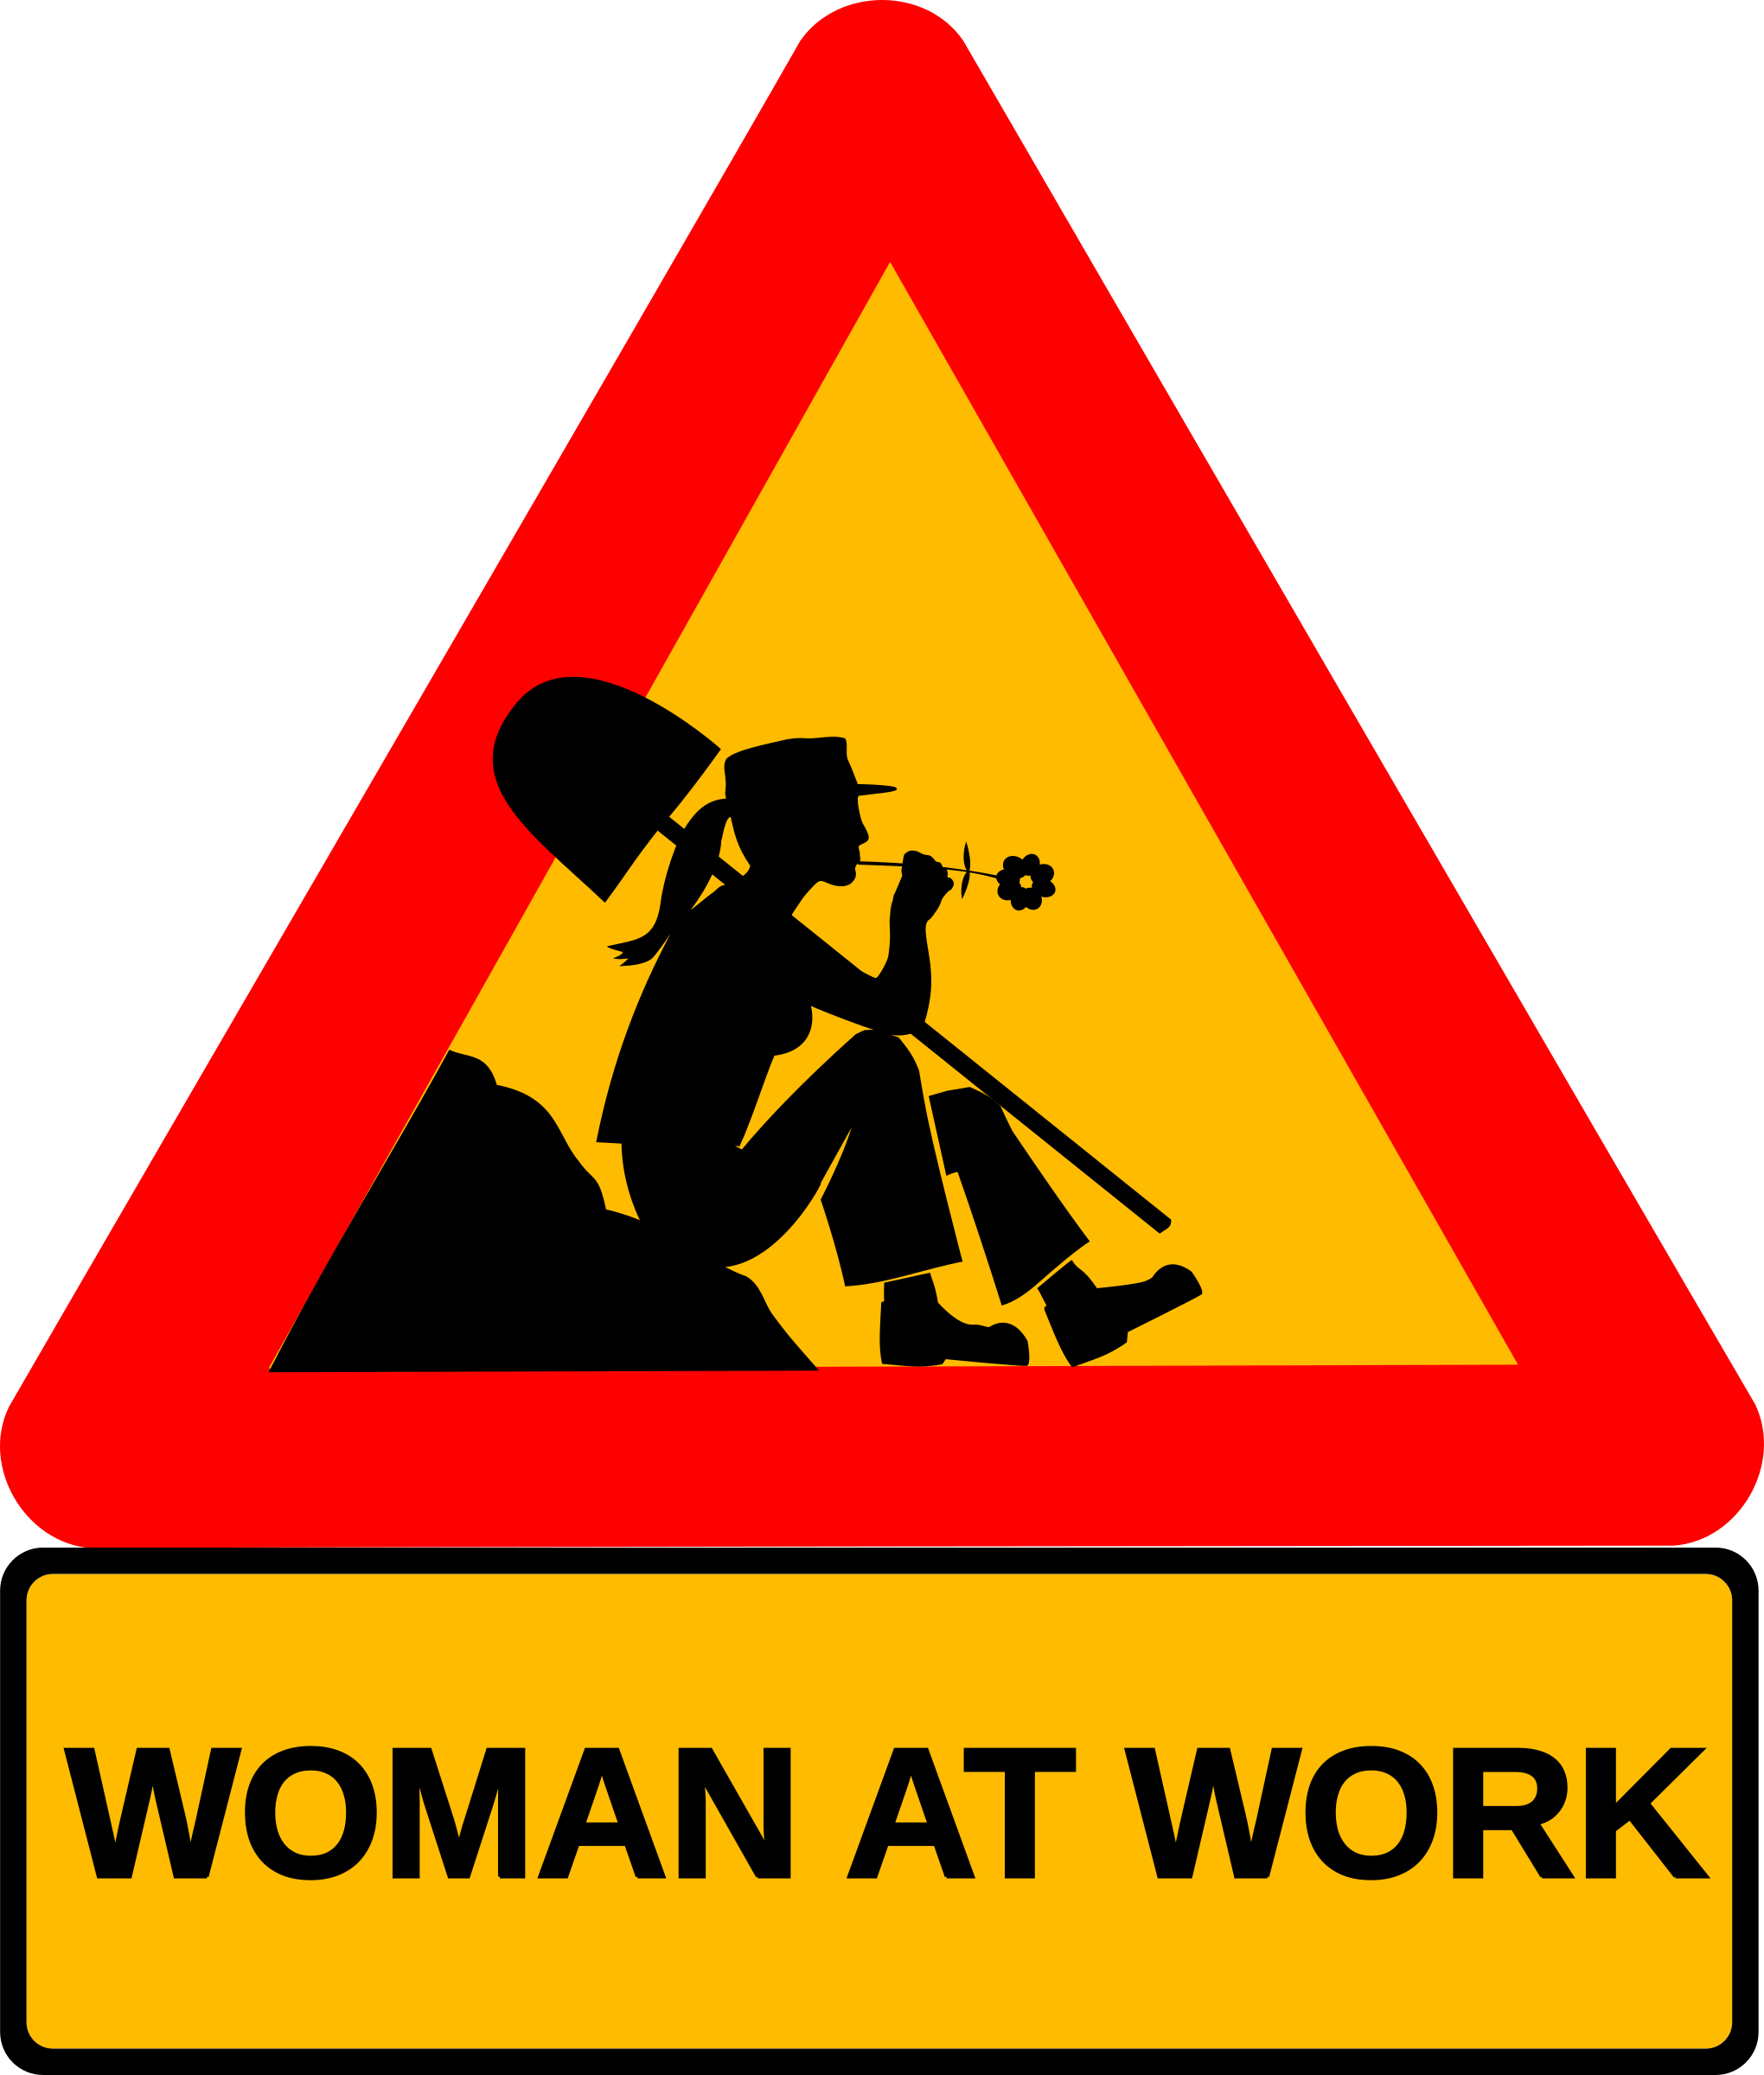 Woman at work by dominiquechappard